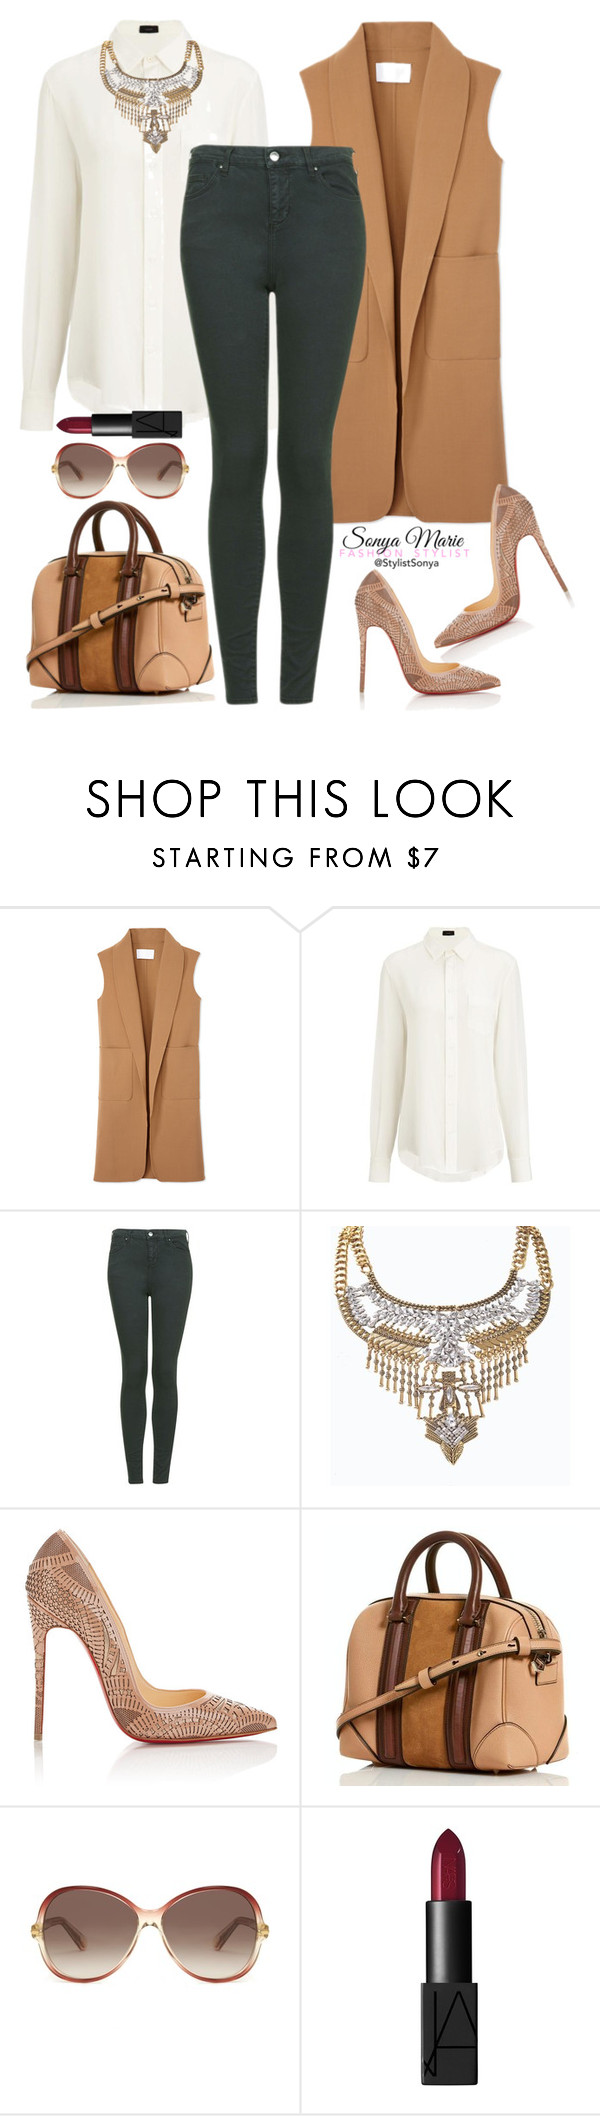 """""""Untitled #257"""" by stylistsonyamarie on Polyvore featuring Alexander Wang, Joseph, Topshop, Christian Louboutin, Marc Jacobs and NARS Cosmetics"""